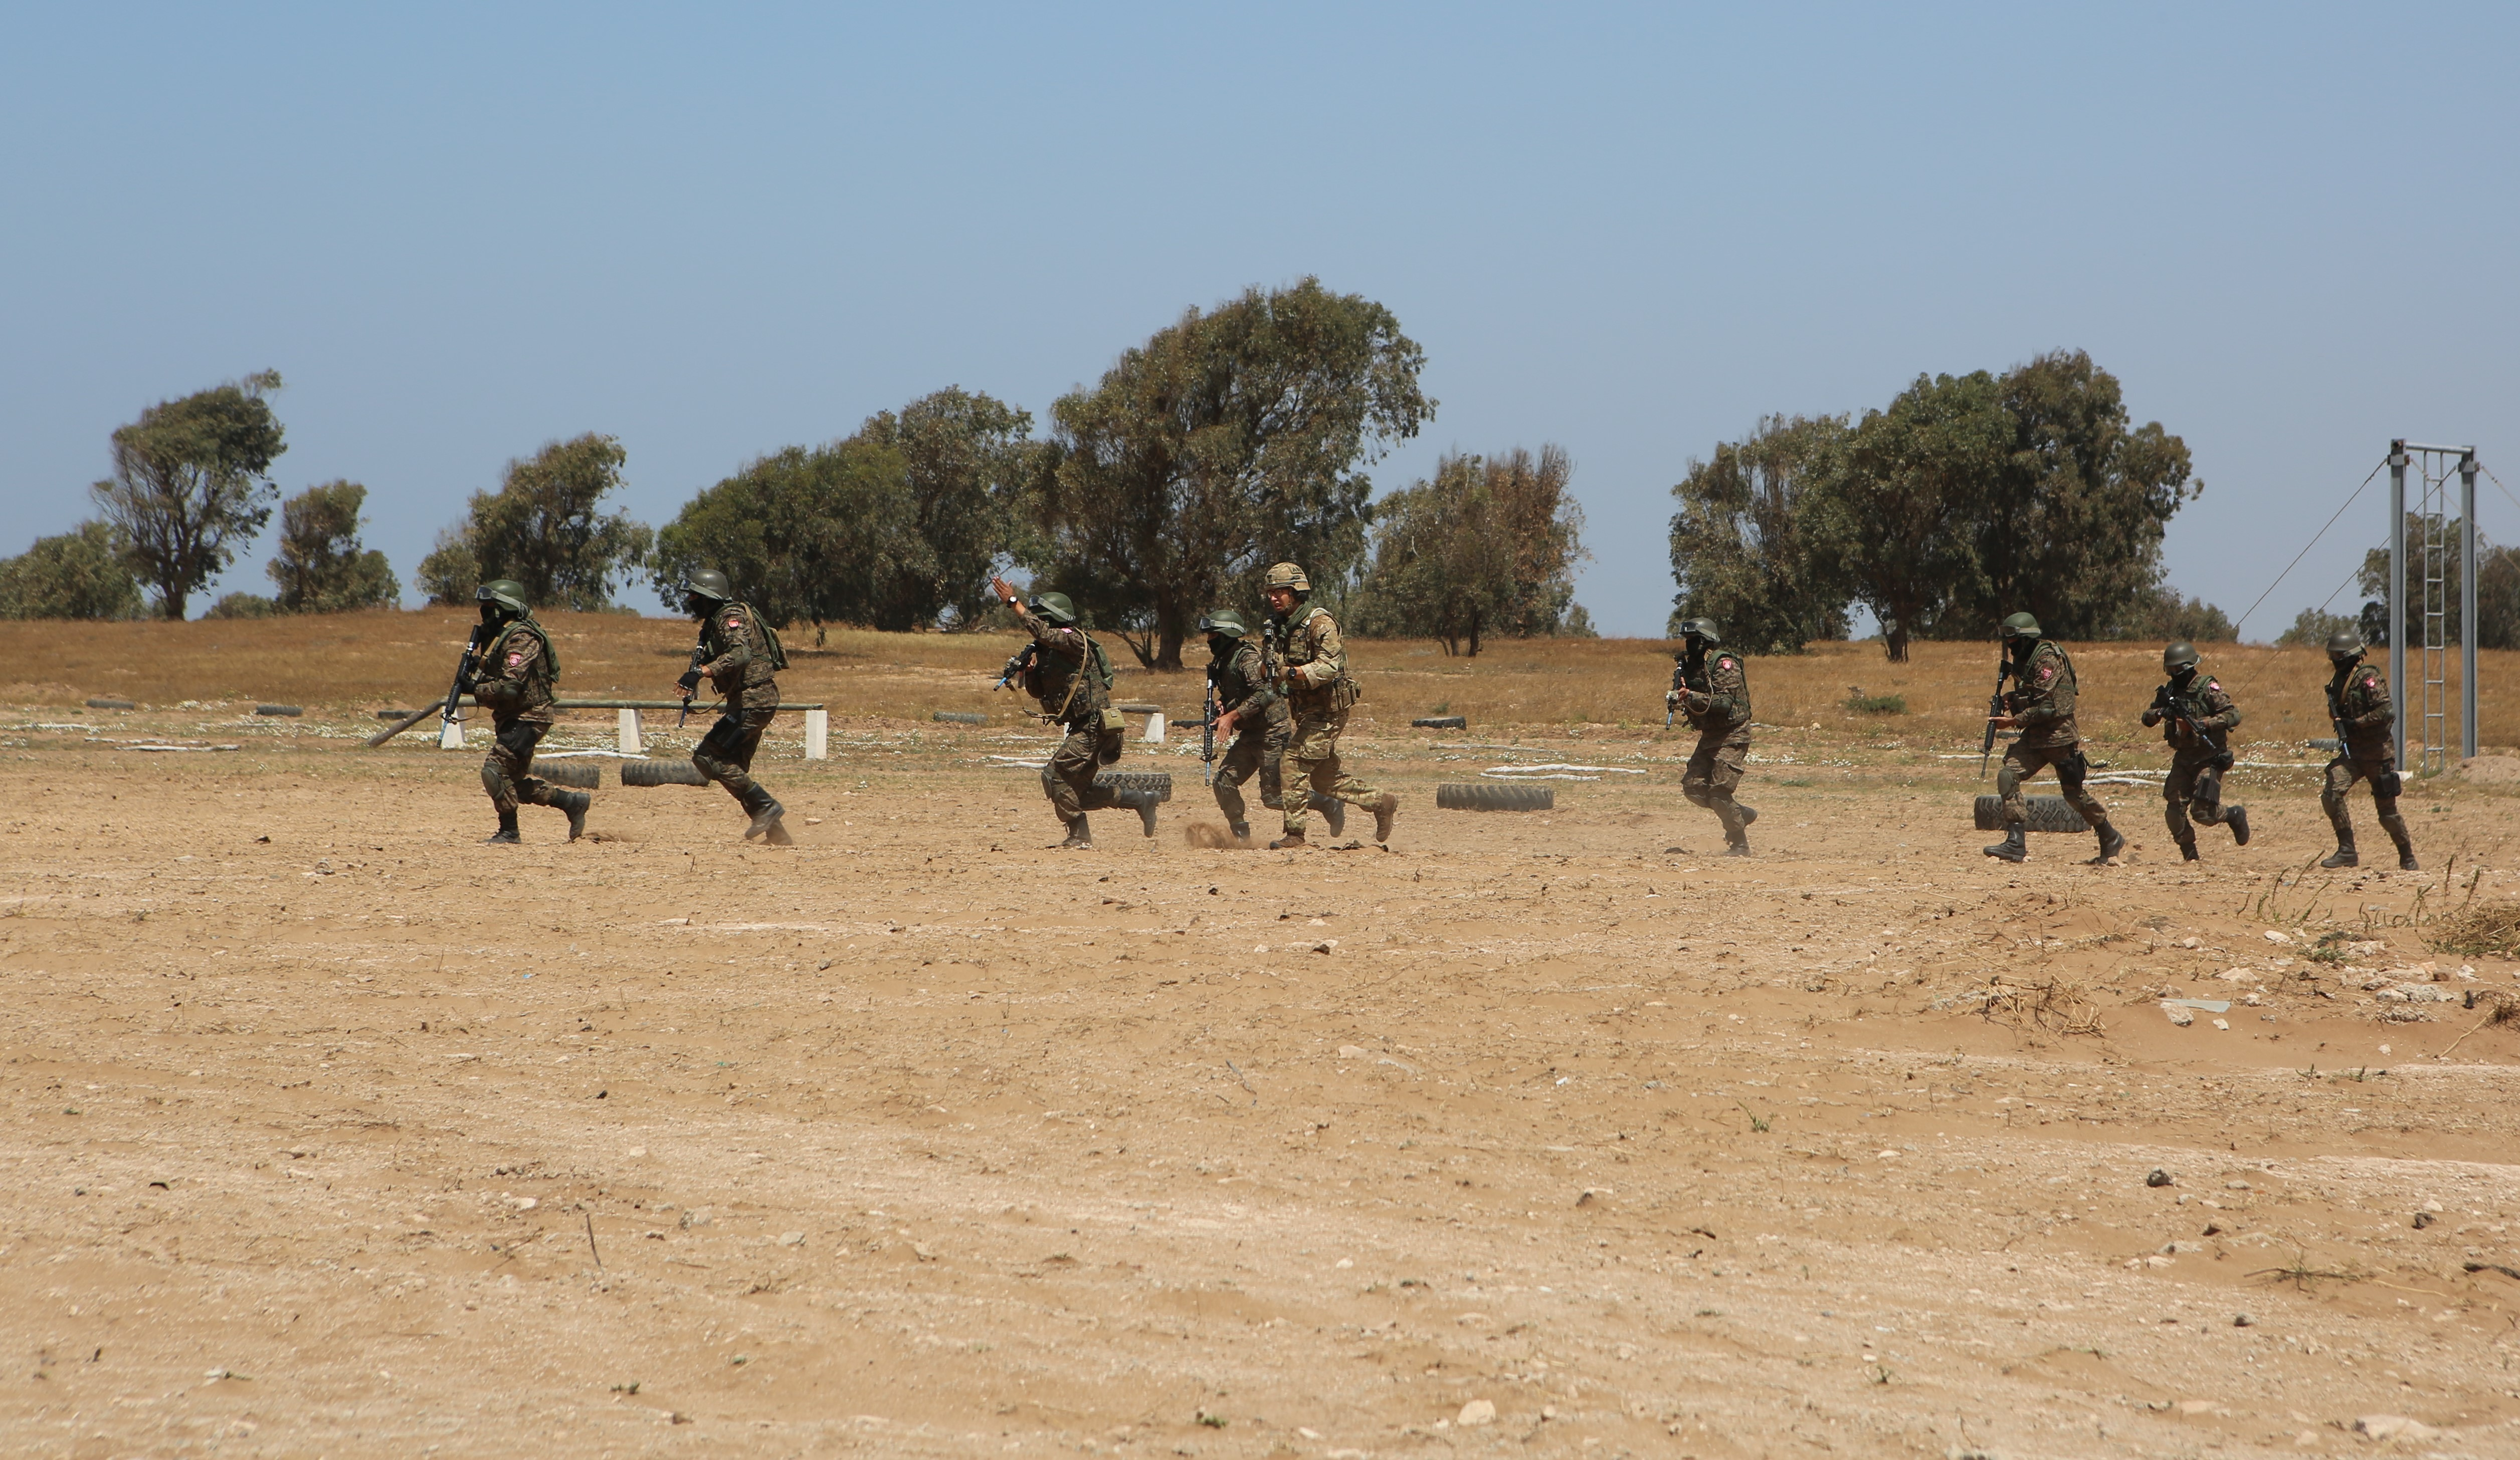 U.S. Marines and Tunisian soldiers participating in Exercise African Lion 2018 demonstrate skills learned during their field training exercise for a distinguished visitor tour delegation in Tifnit, Morocco, April 26, 2018. Exercise African Lion is a continuation of the U.S. and Morocco's long-standing relationship focused on security cooperation. (U.S. Marine Corps photo by Sgt. Averi Coppa/Released)